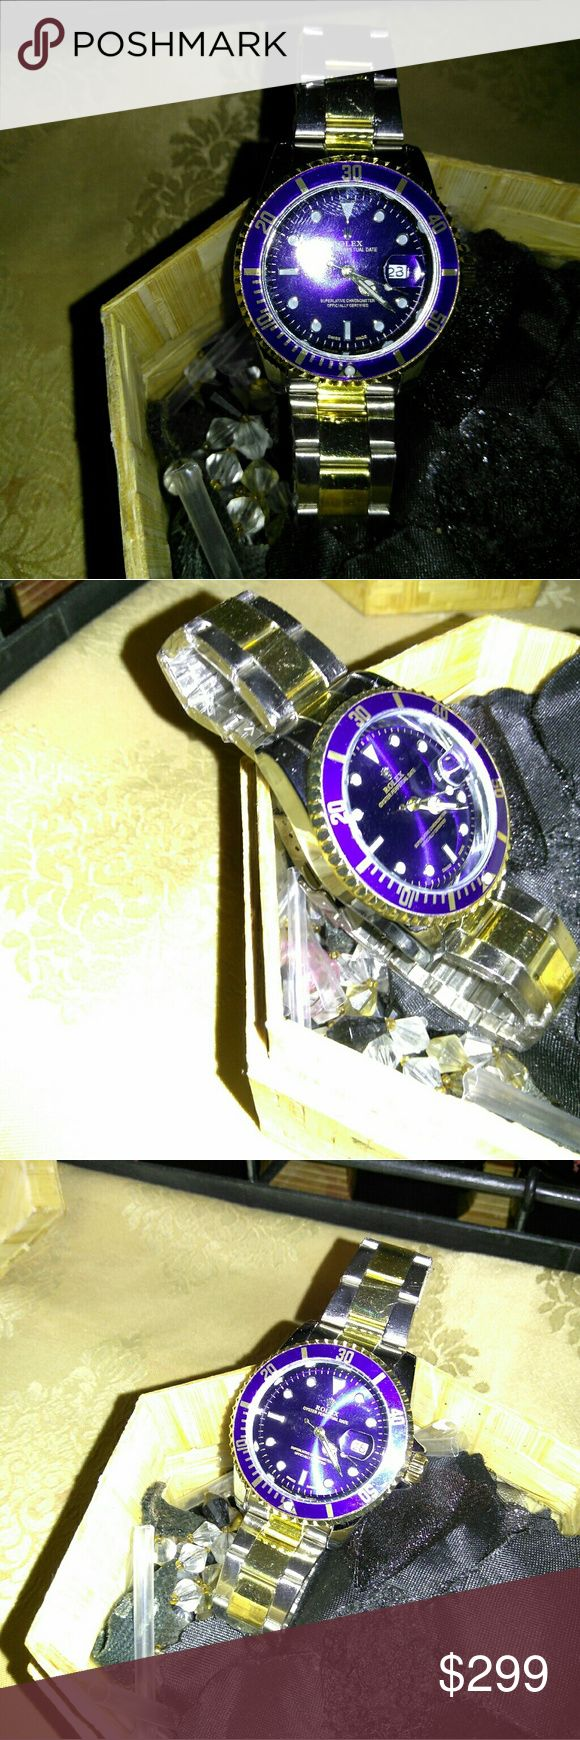 Rolex Submariner Watch New Rolex Watch  Good condition Sold as shown Fits nice  Price negotiable , I'll work with the proper buyer Rolex Accessories Watches